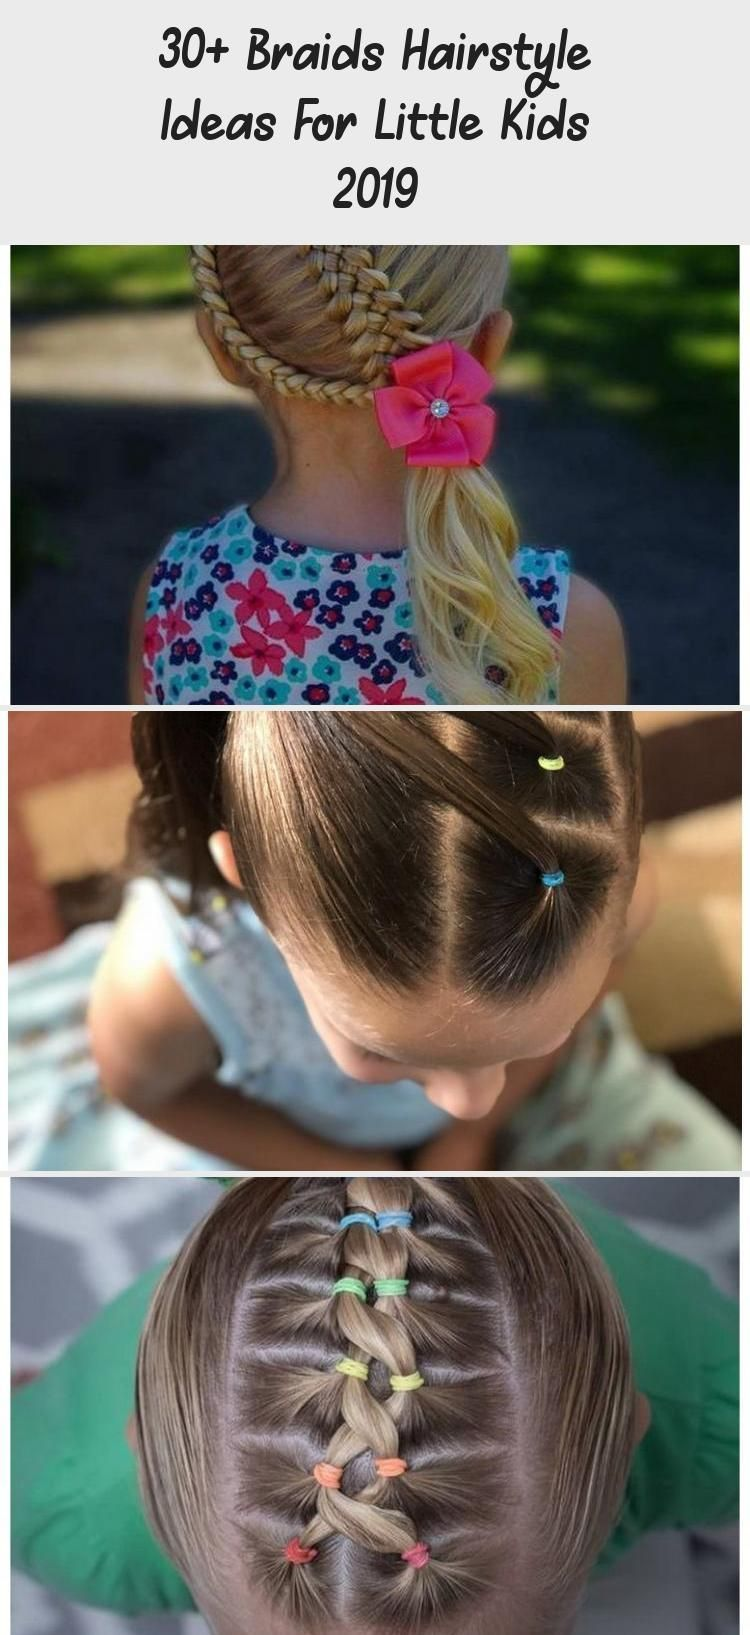 Finding Braids Hairstyle Ideas For Little Kids Online Braids Hairstyle Ideas For Little Kids Explained In 2020 Hair Styles Braided Hairstyles Crochet Braids Hairstyles